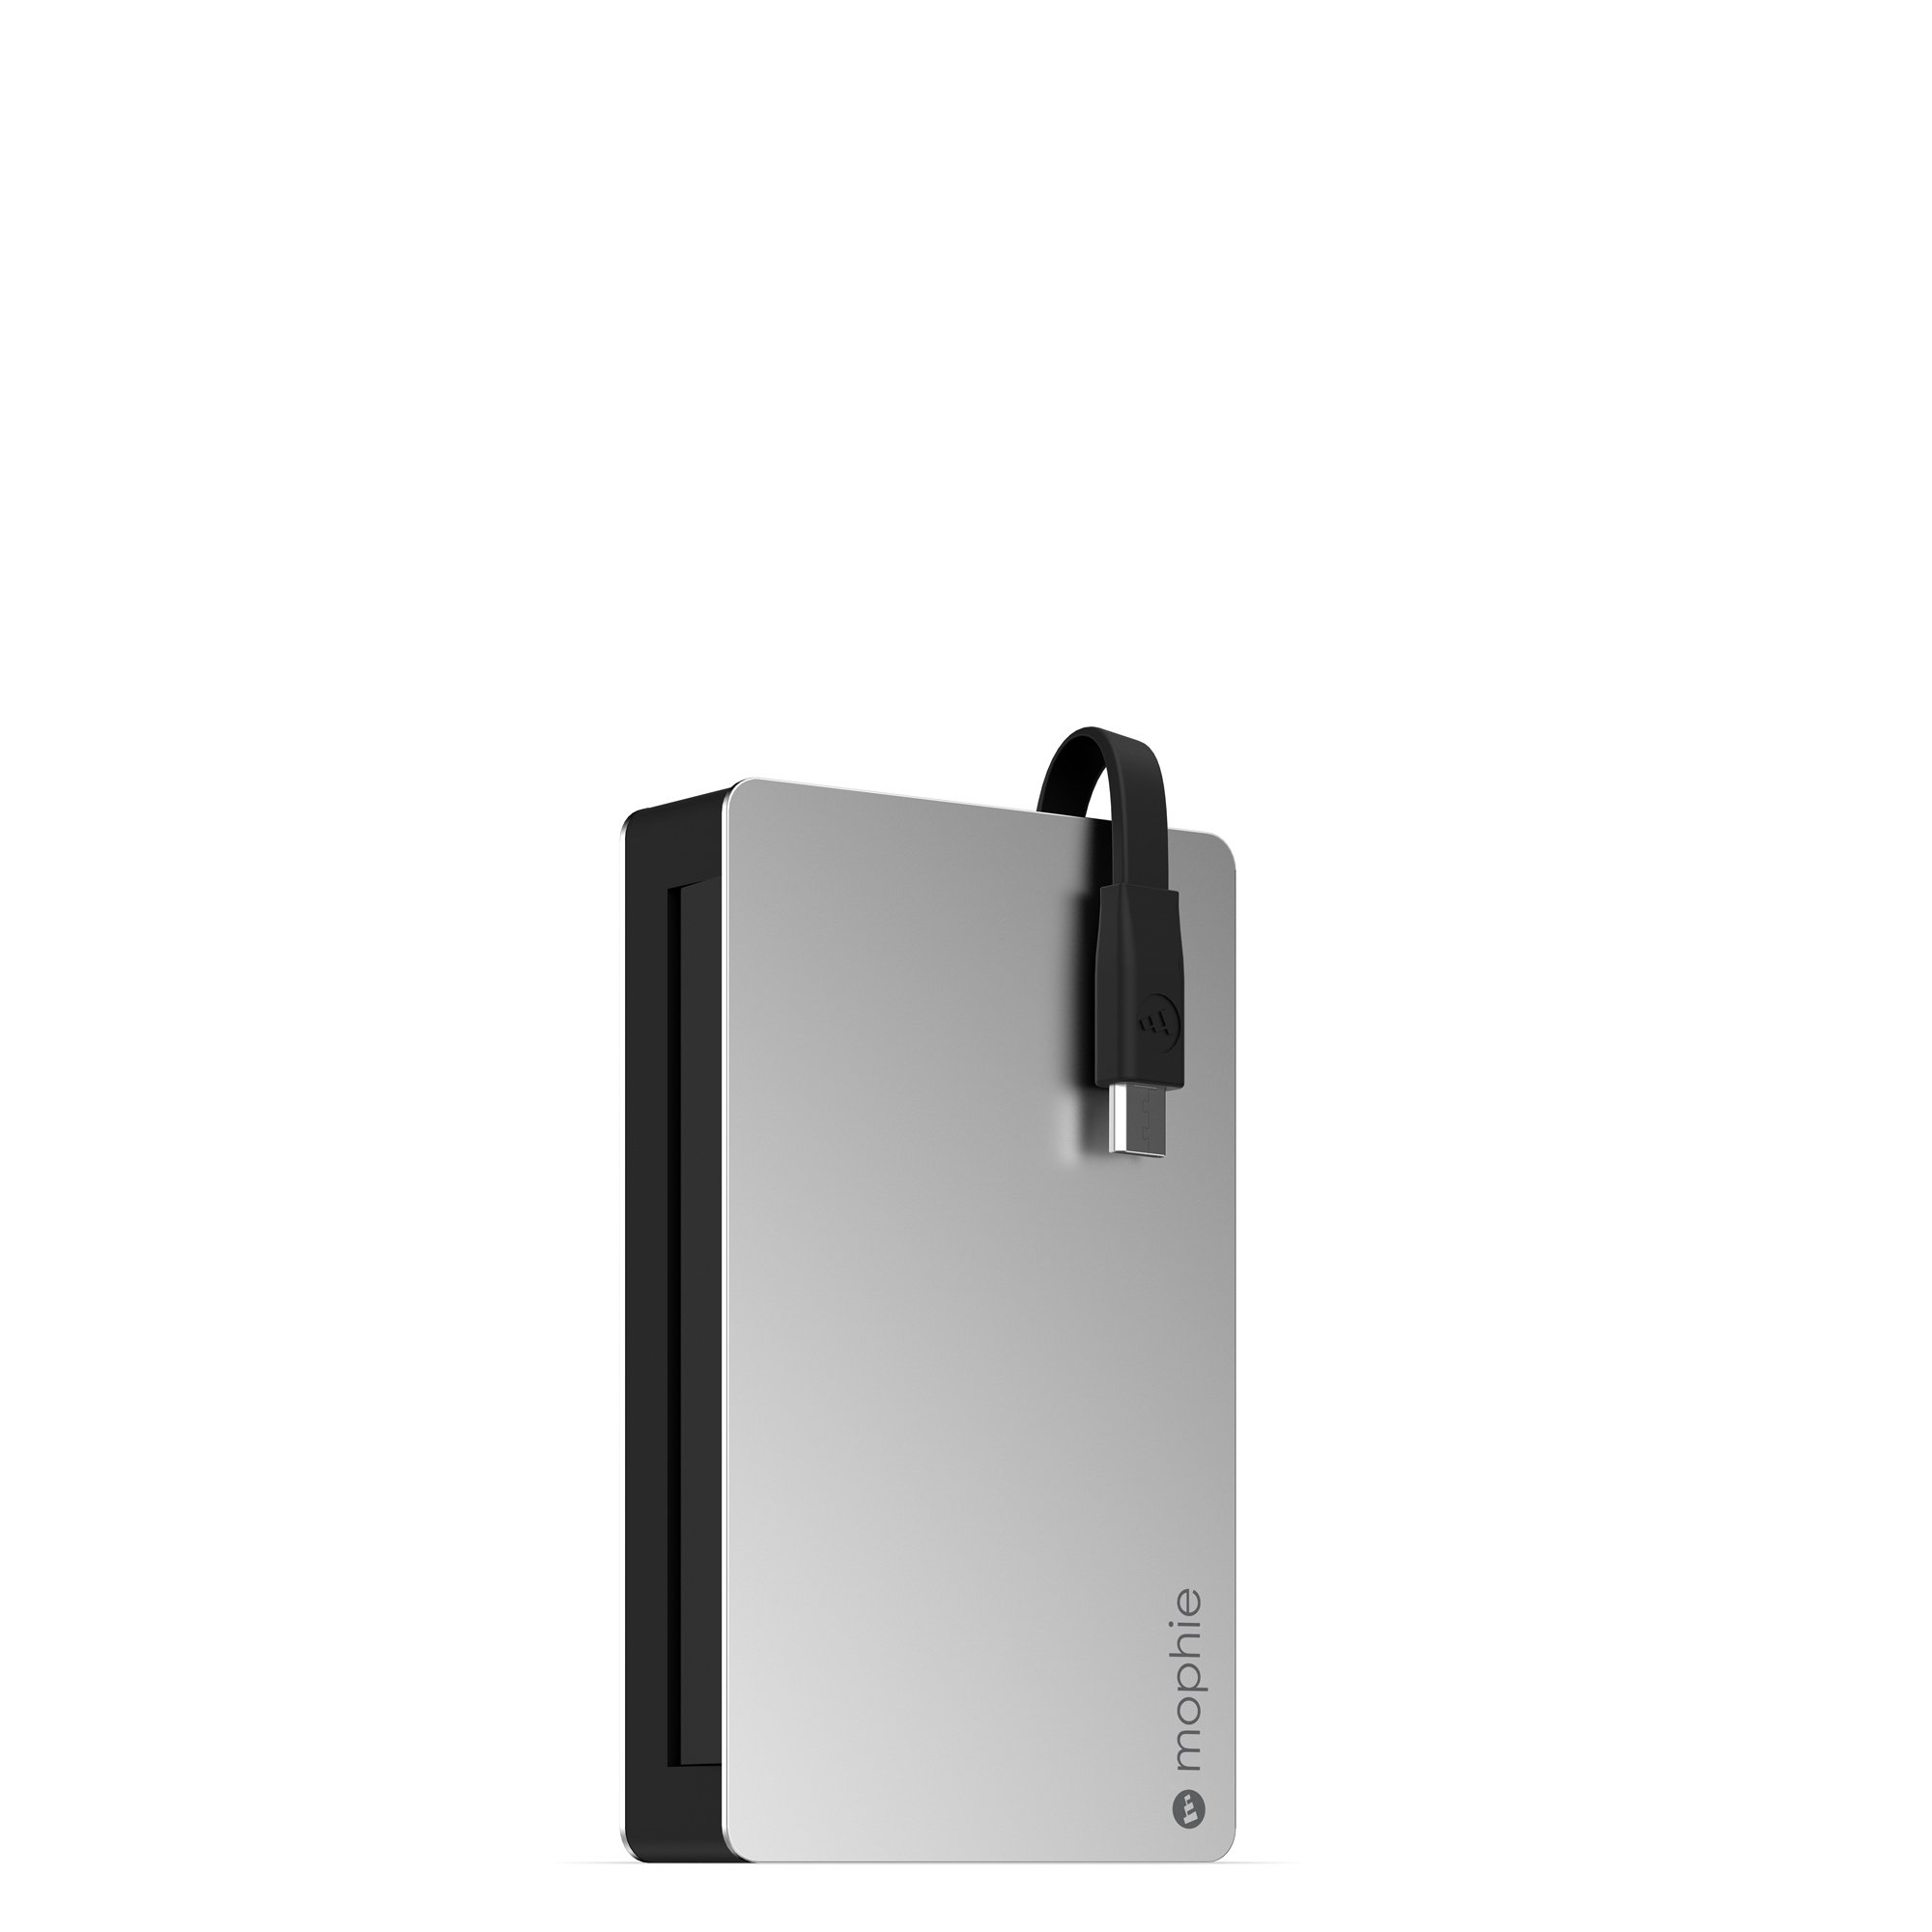 mophie powerstation Plus 3x with Micro USB (5,000 mAh) - Black (For Android Only)